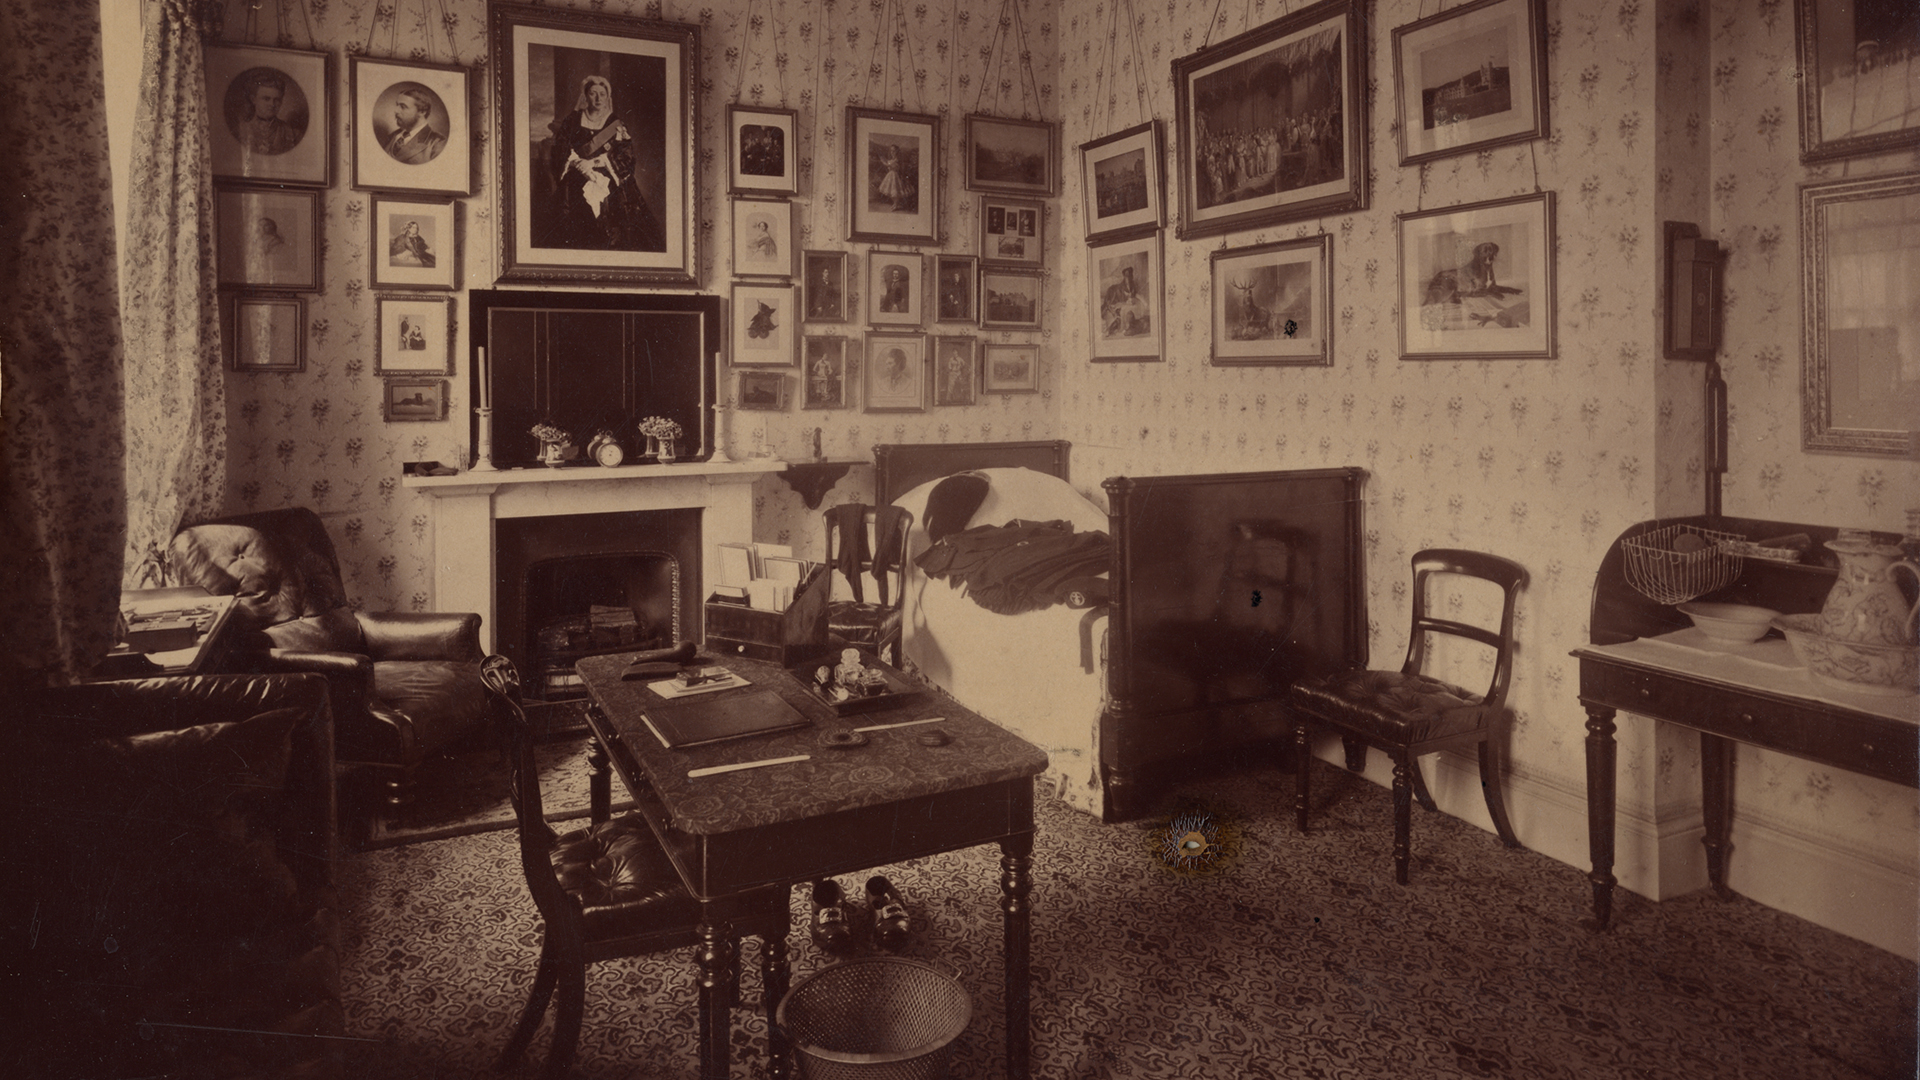 John-Browns-Bedroom-Osborne-House-1882-1883